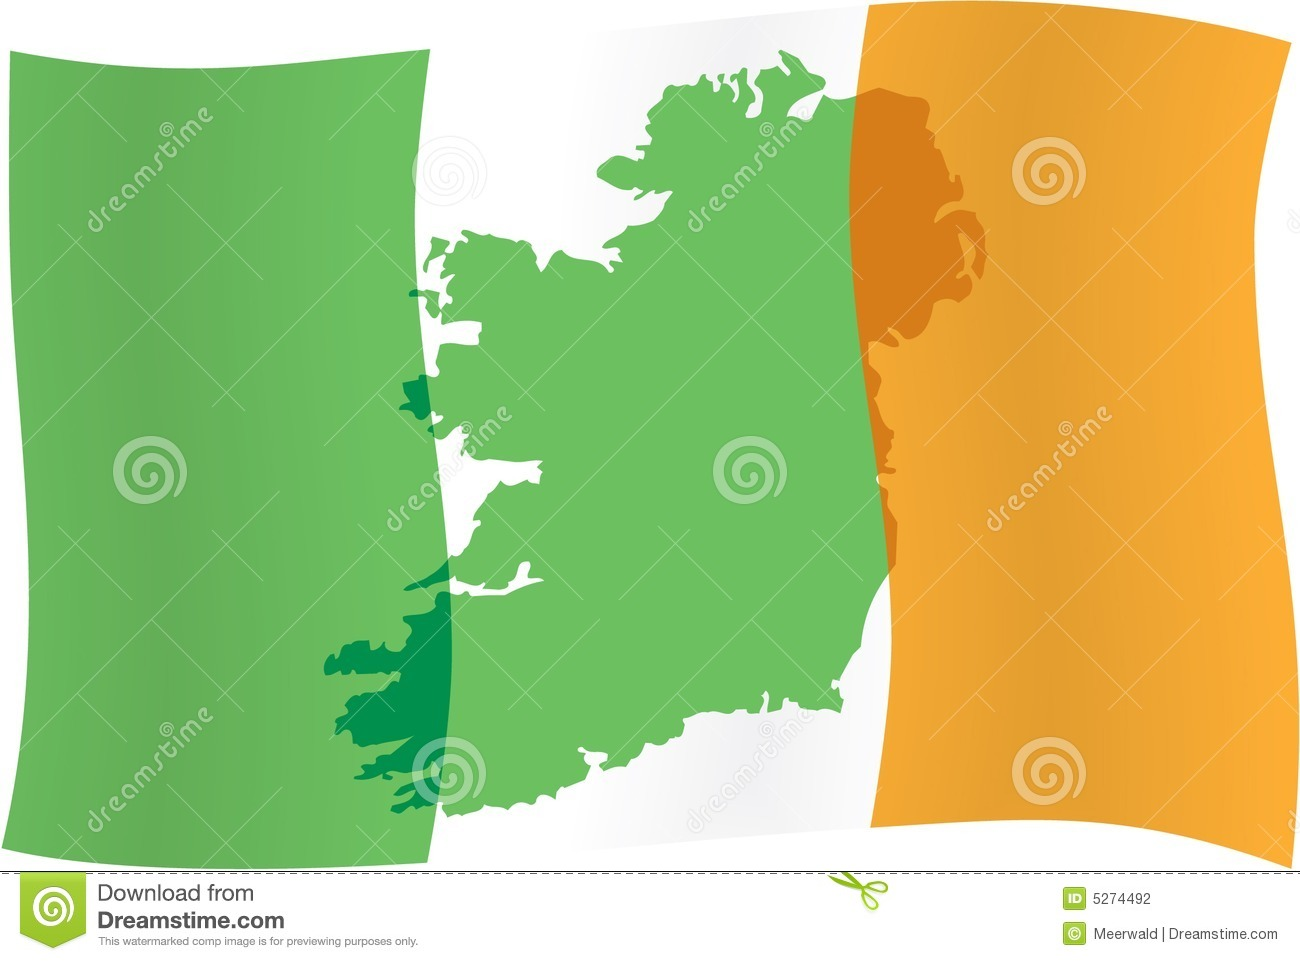 ireland map u0026 counties royalty free stock images image 5032119